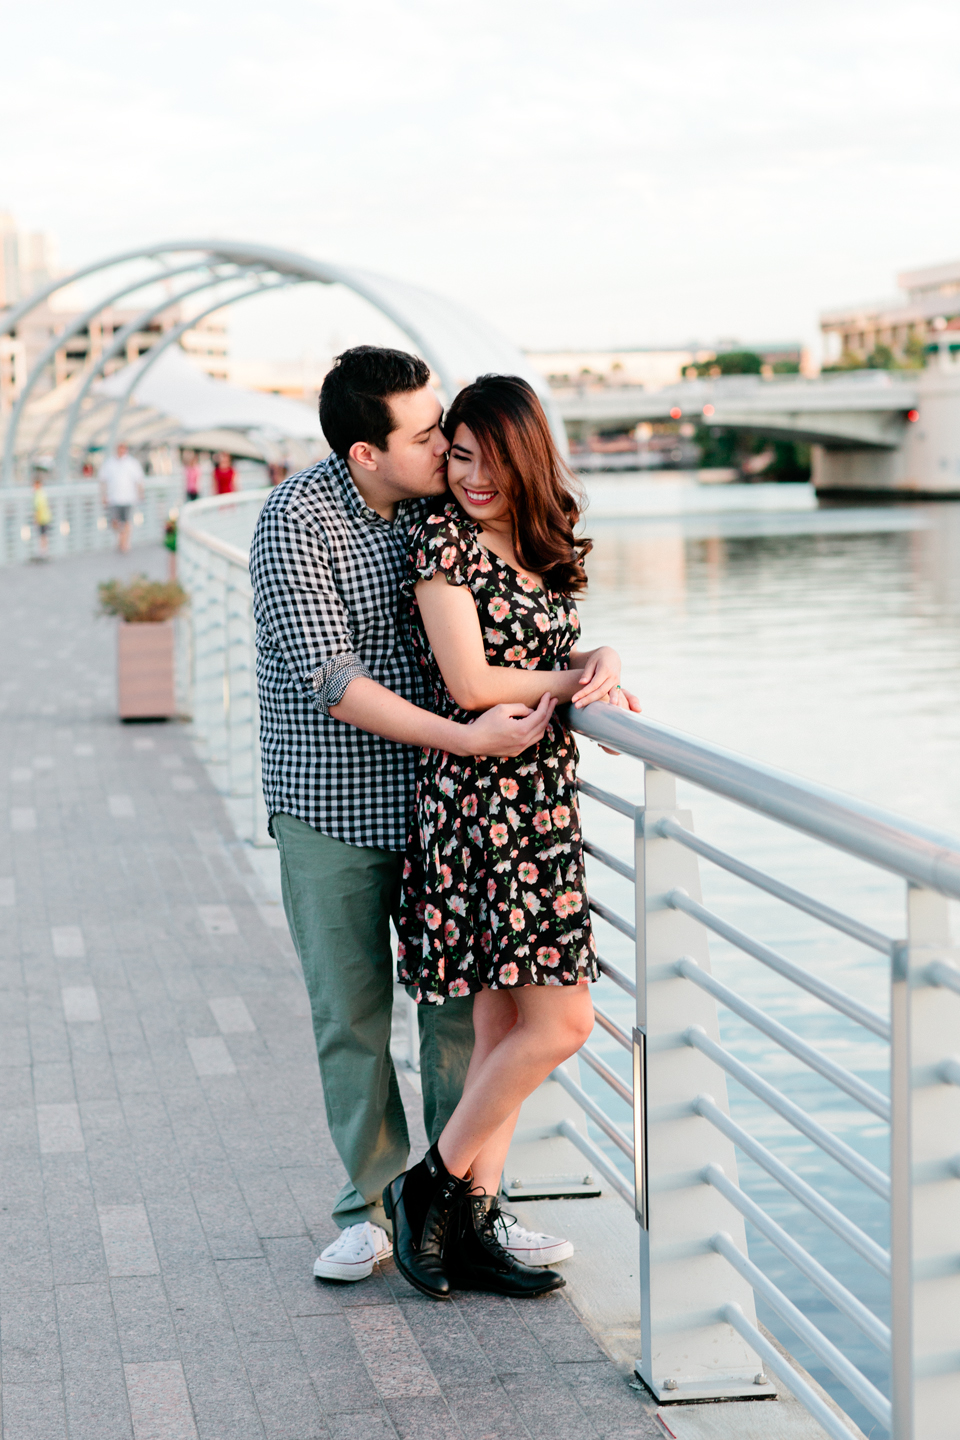 Picture of an engaged couple embracing on the Tampa Riverwalk in downtown Tampa at Curtis Hixon Waterfront Park.